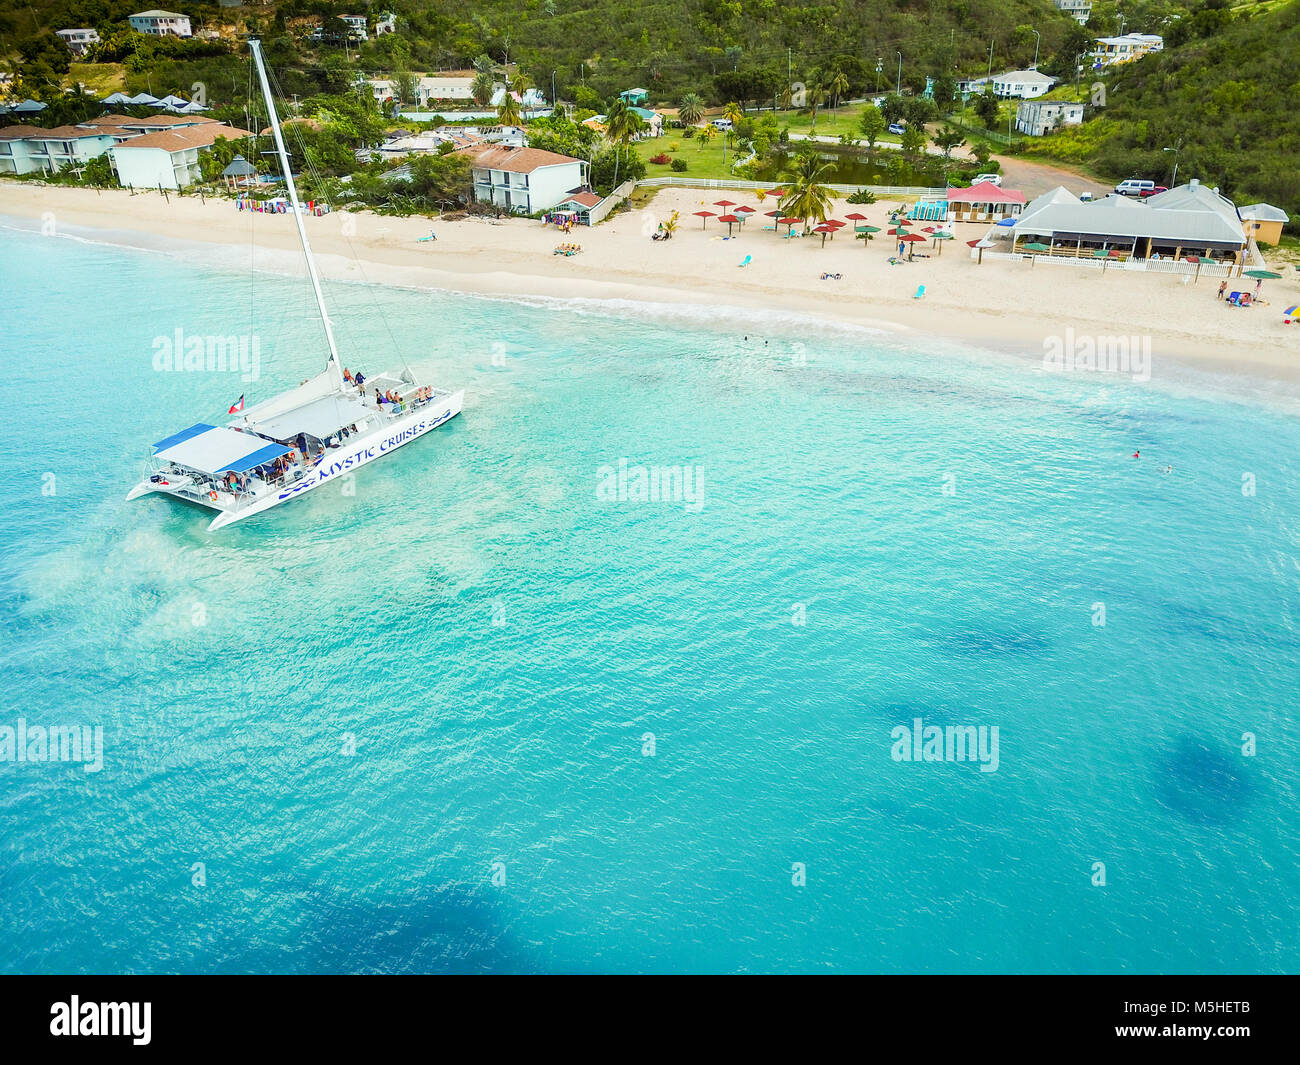 Mystic Cruises tourist Catamaran, Turner's Restaurant, Turner's Beach, Picarts Bay, Antigua - Stock Image